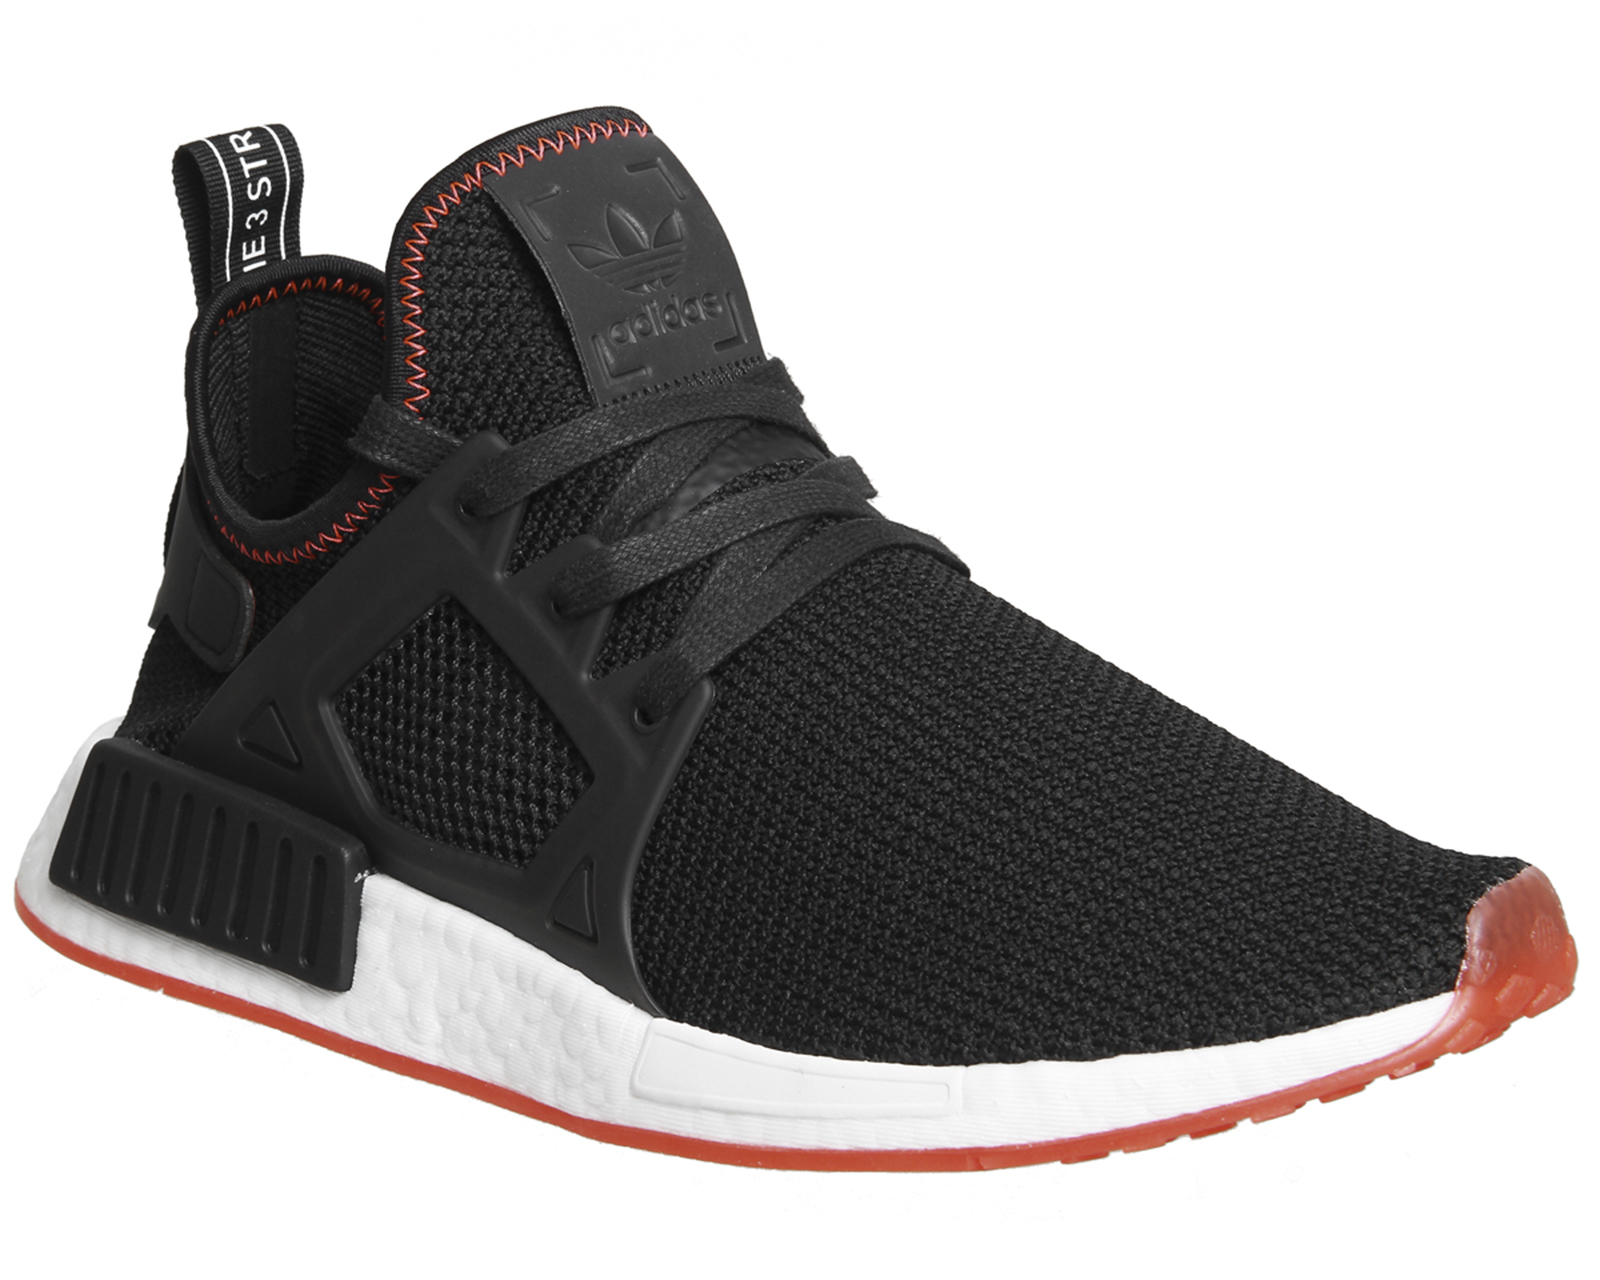 cheaper c2e1b 97713 Sentinel Adidas Nmd Xr1 BLACK BLACK SOLAR RED Trainers Shoes